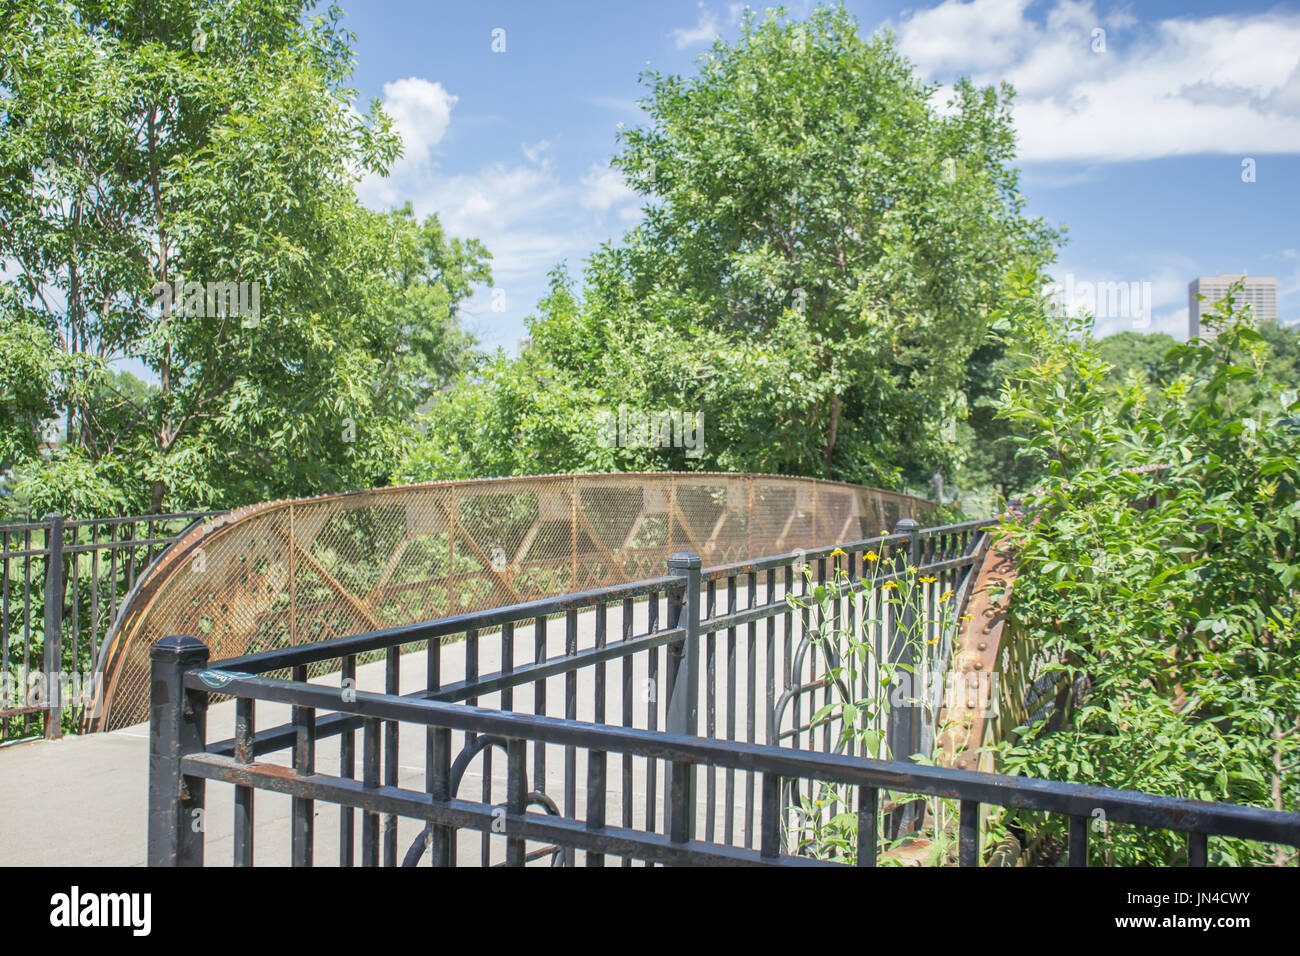 Bridge in the middle of Loring Park in Minneapolis, MN - Stock Image